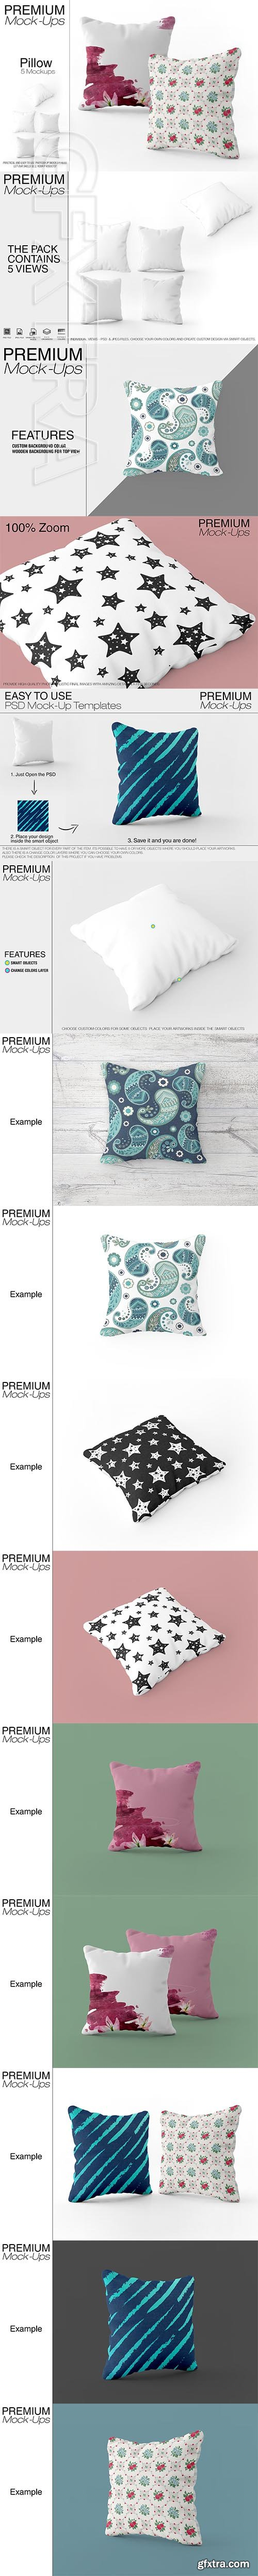 CreativeMarket - Square Throw Pillow Mockup 2541534